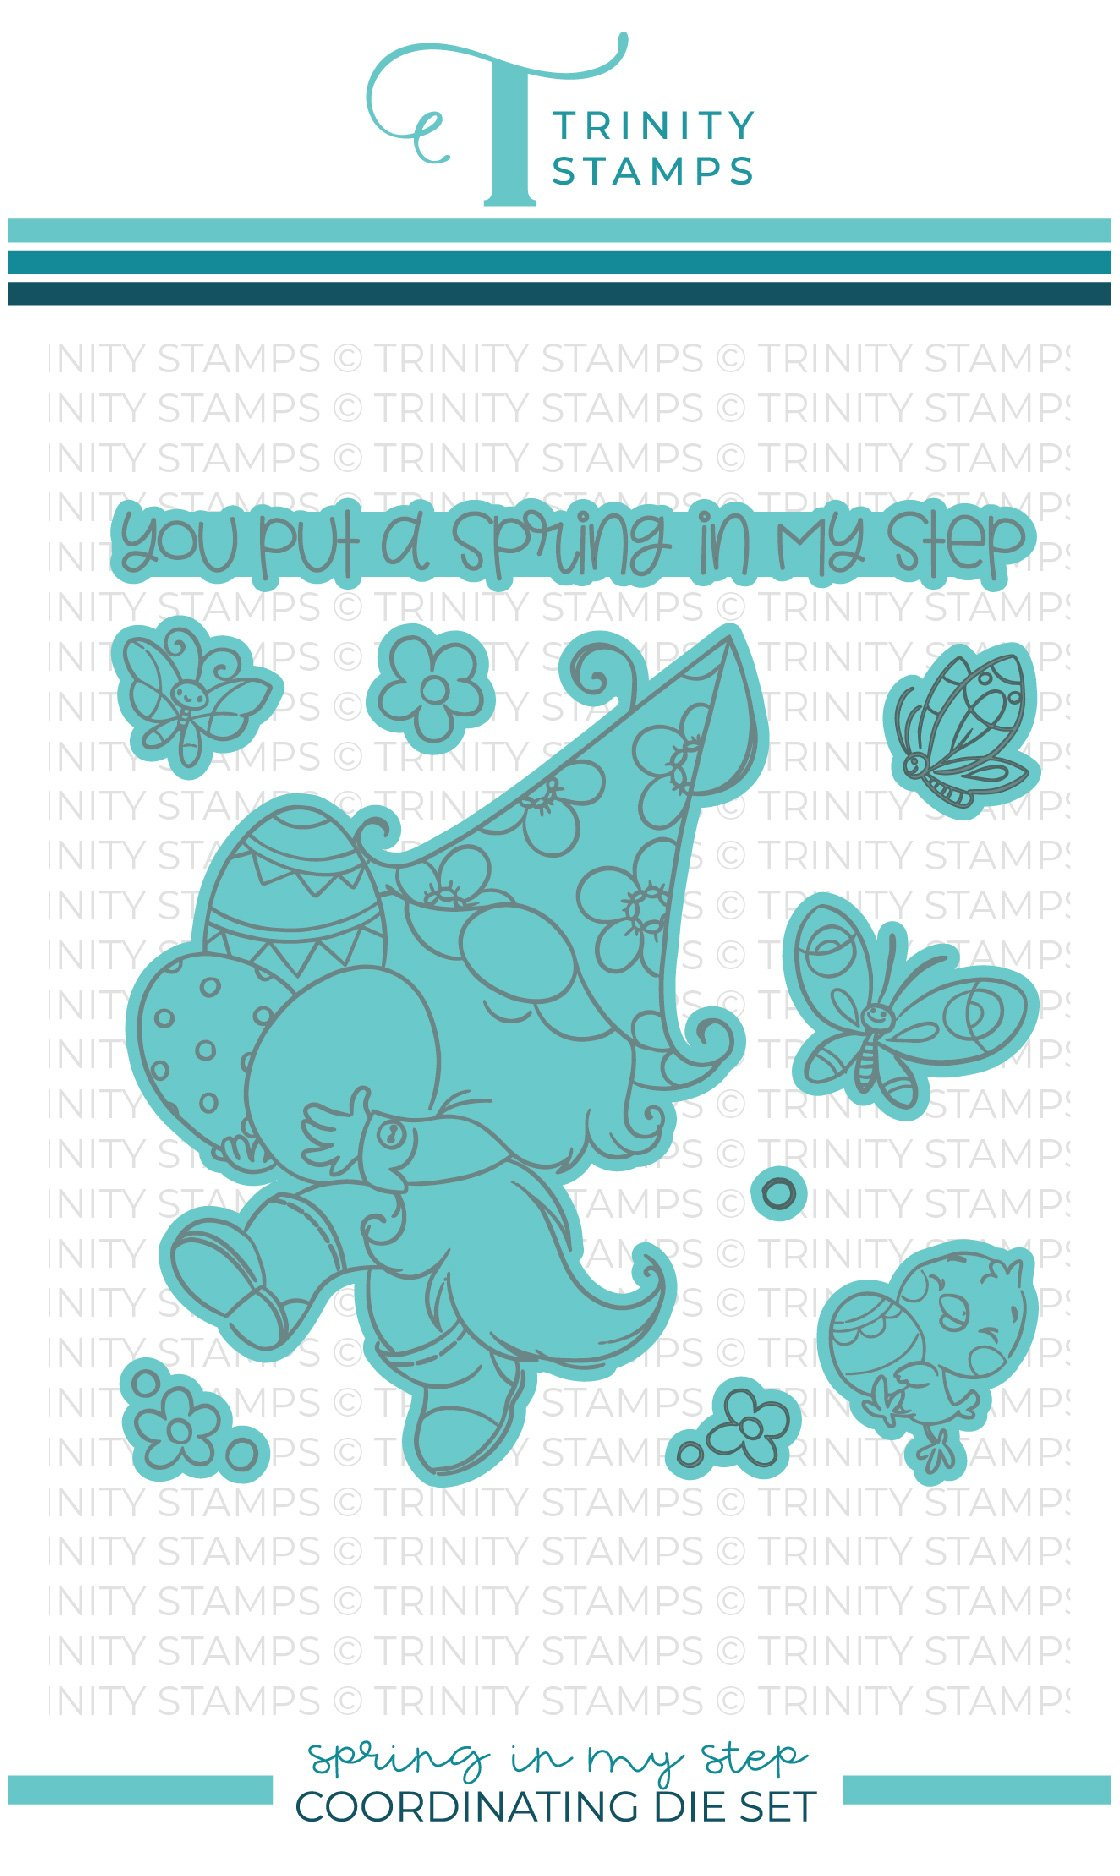 *NEW* - Trinity Stamps - Spring In My Step Coordinating Die Set